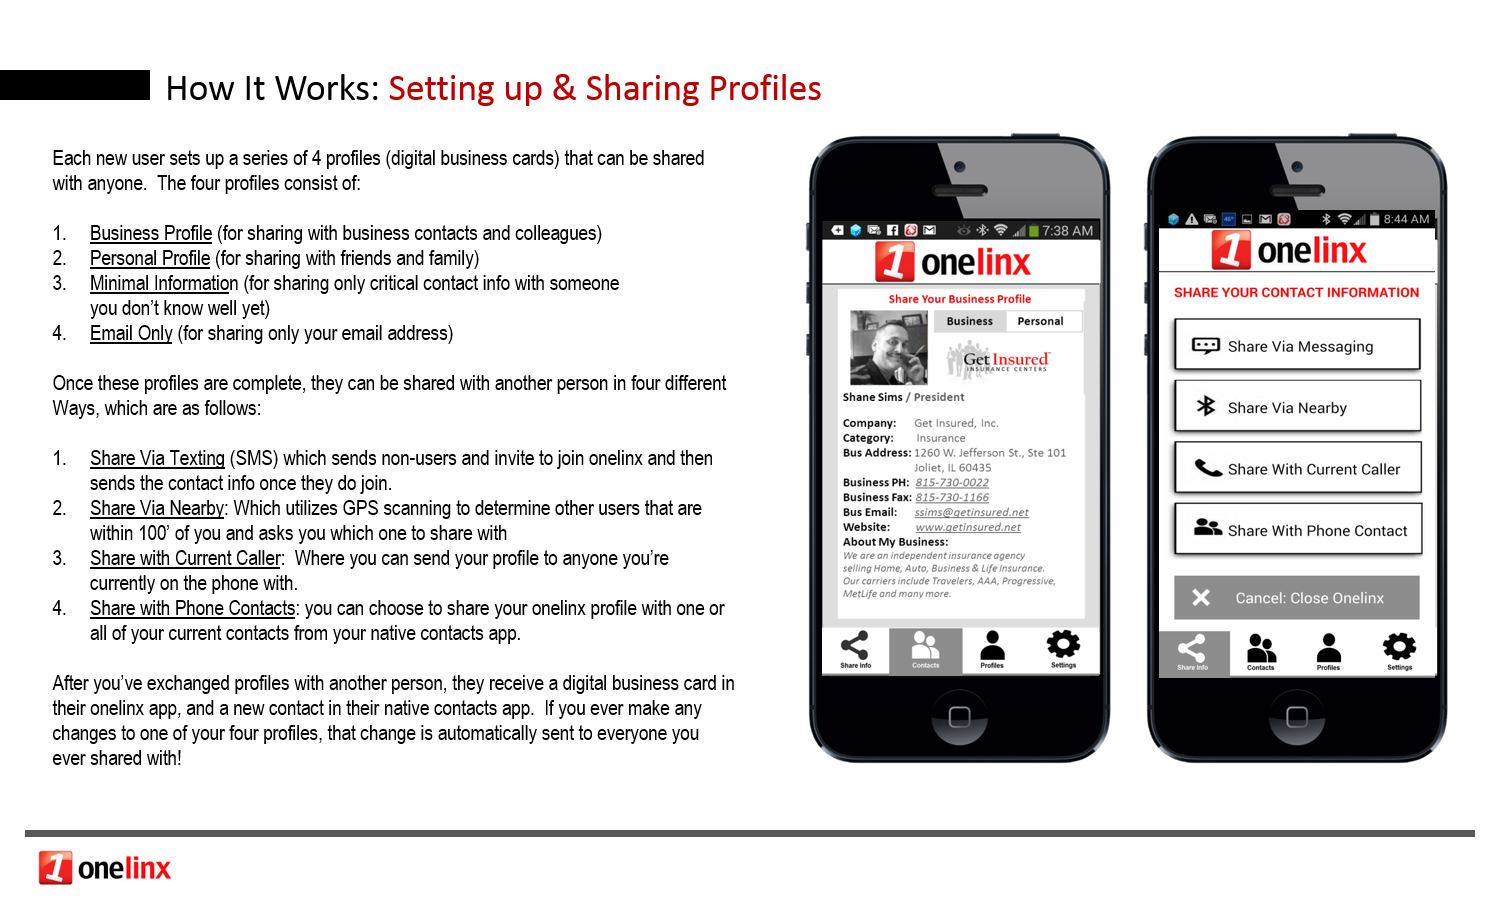 Fantastic business card sharing app photos business card ideas knocard review digital business cards webguy marketing onelinx contacts manager android apps on google play reheart Images